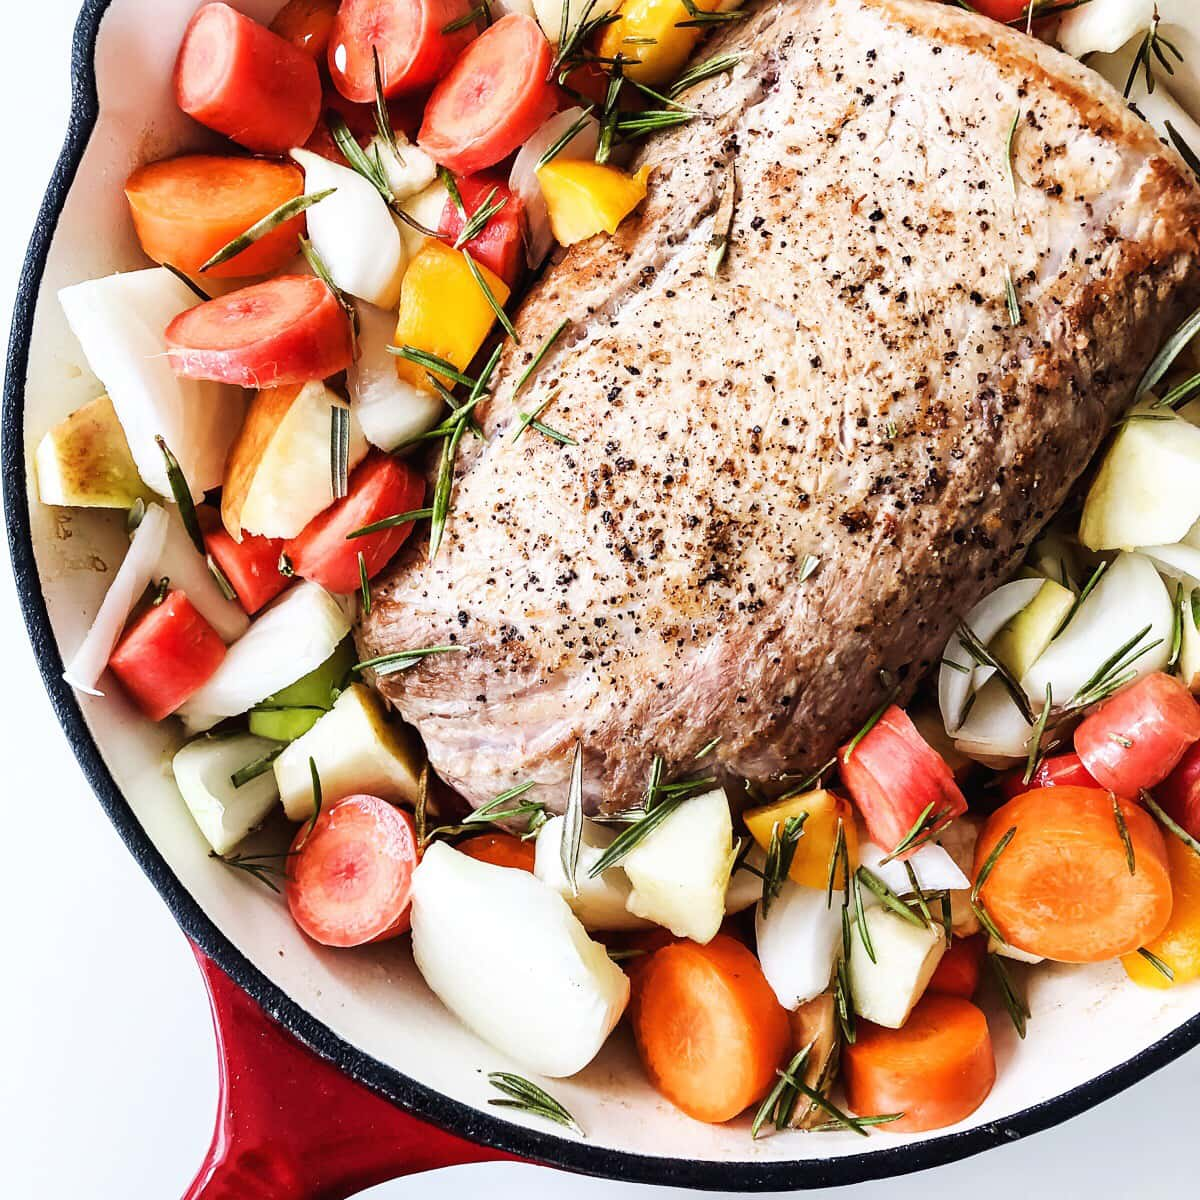 Pork Loin Roast with Vegetables